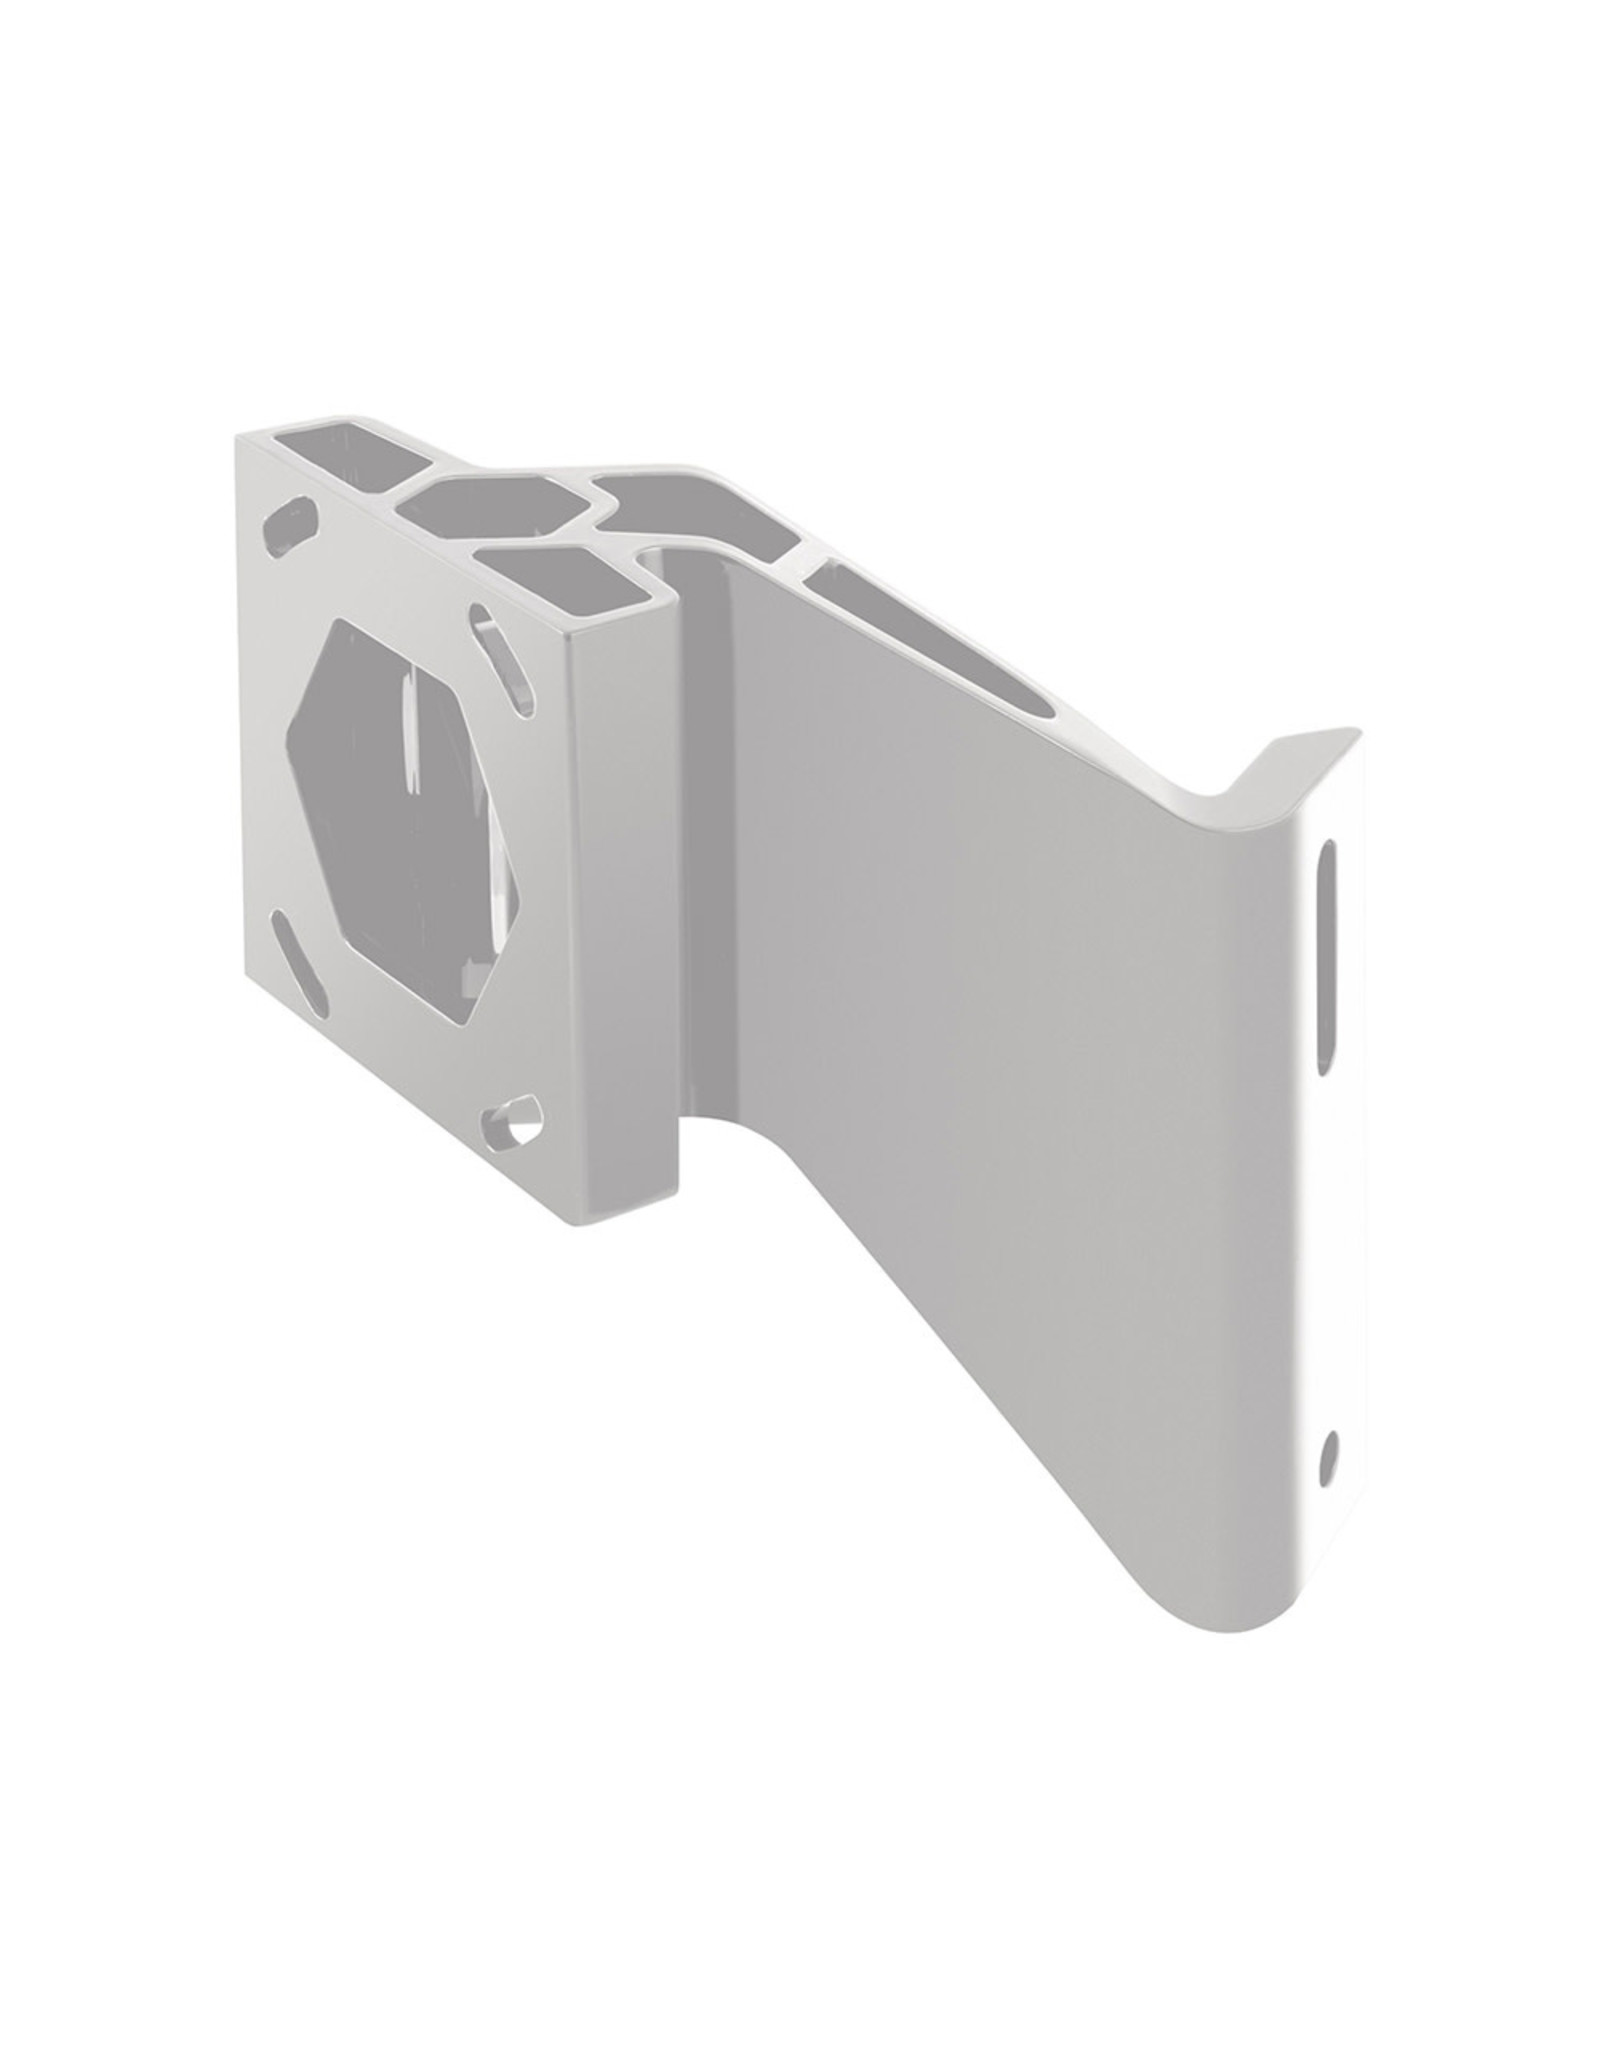 "Minn Kota 4"" Raptor Jack Plate Adapter - Port - White"